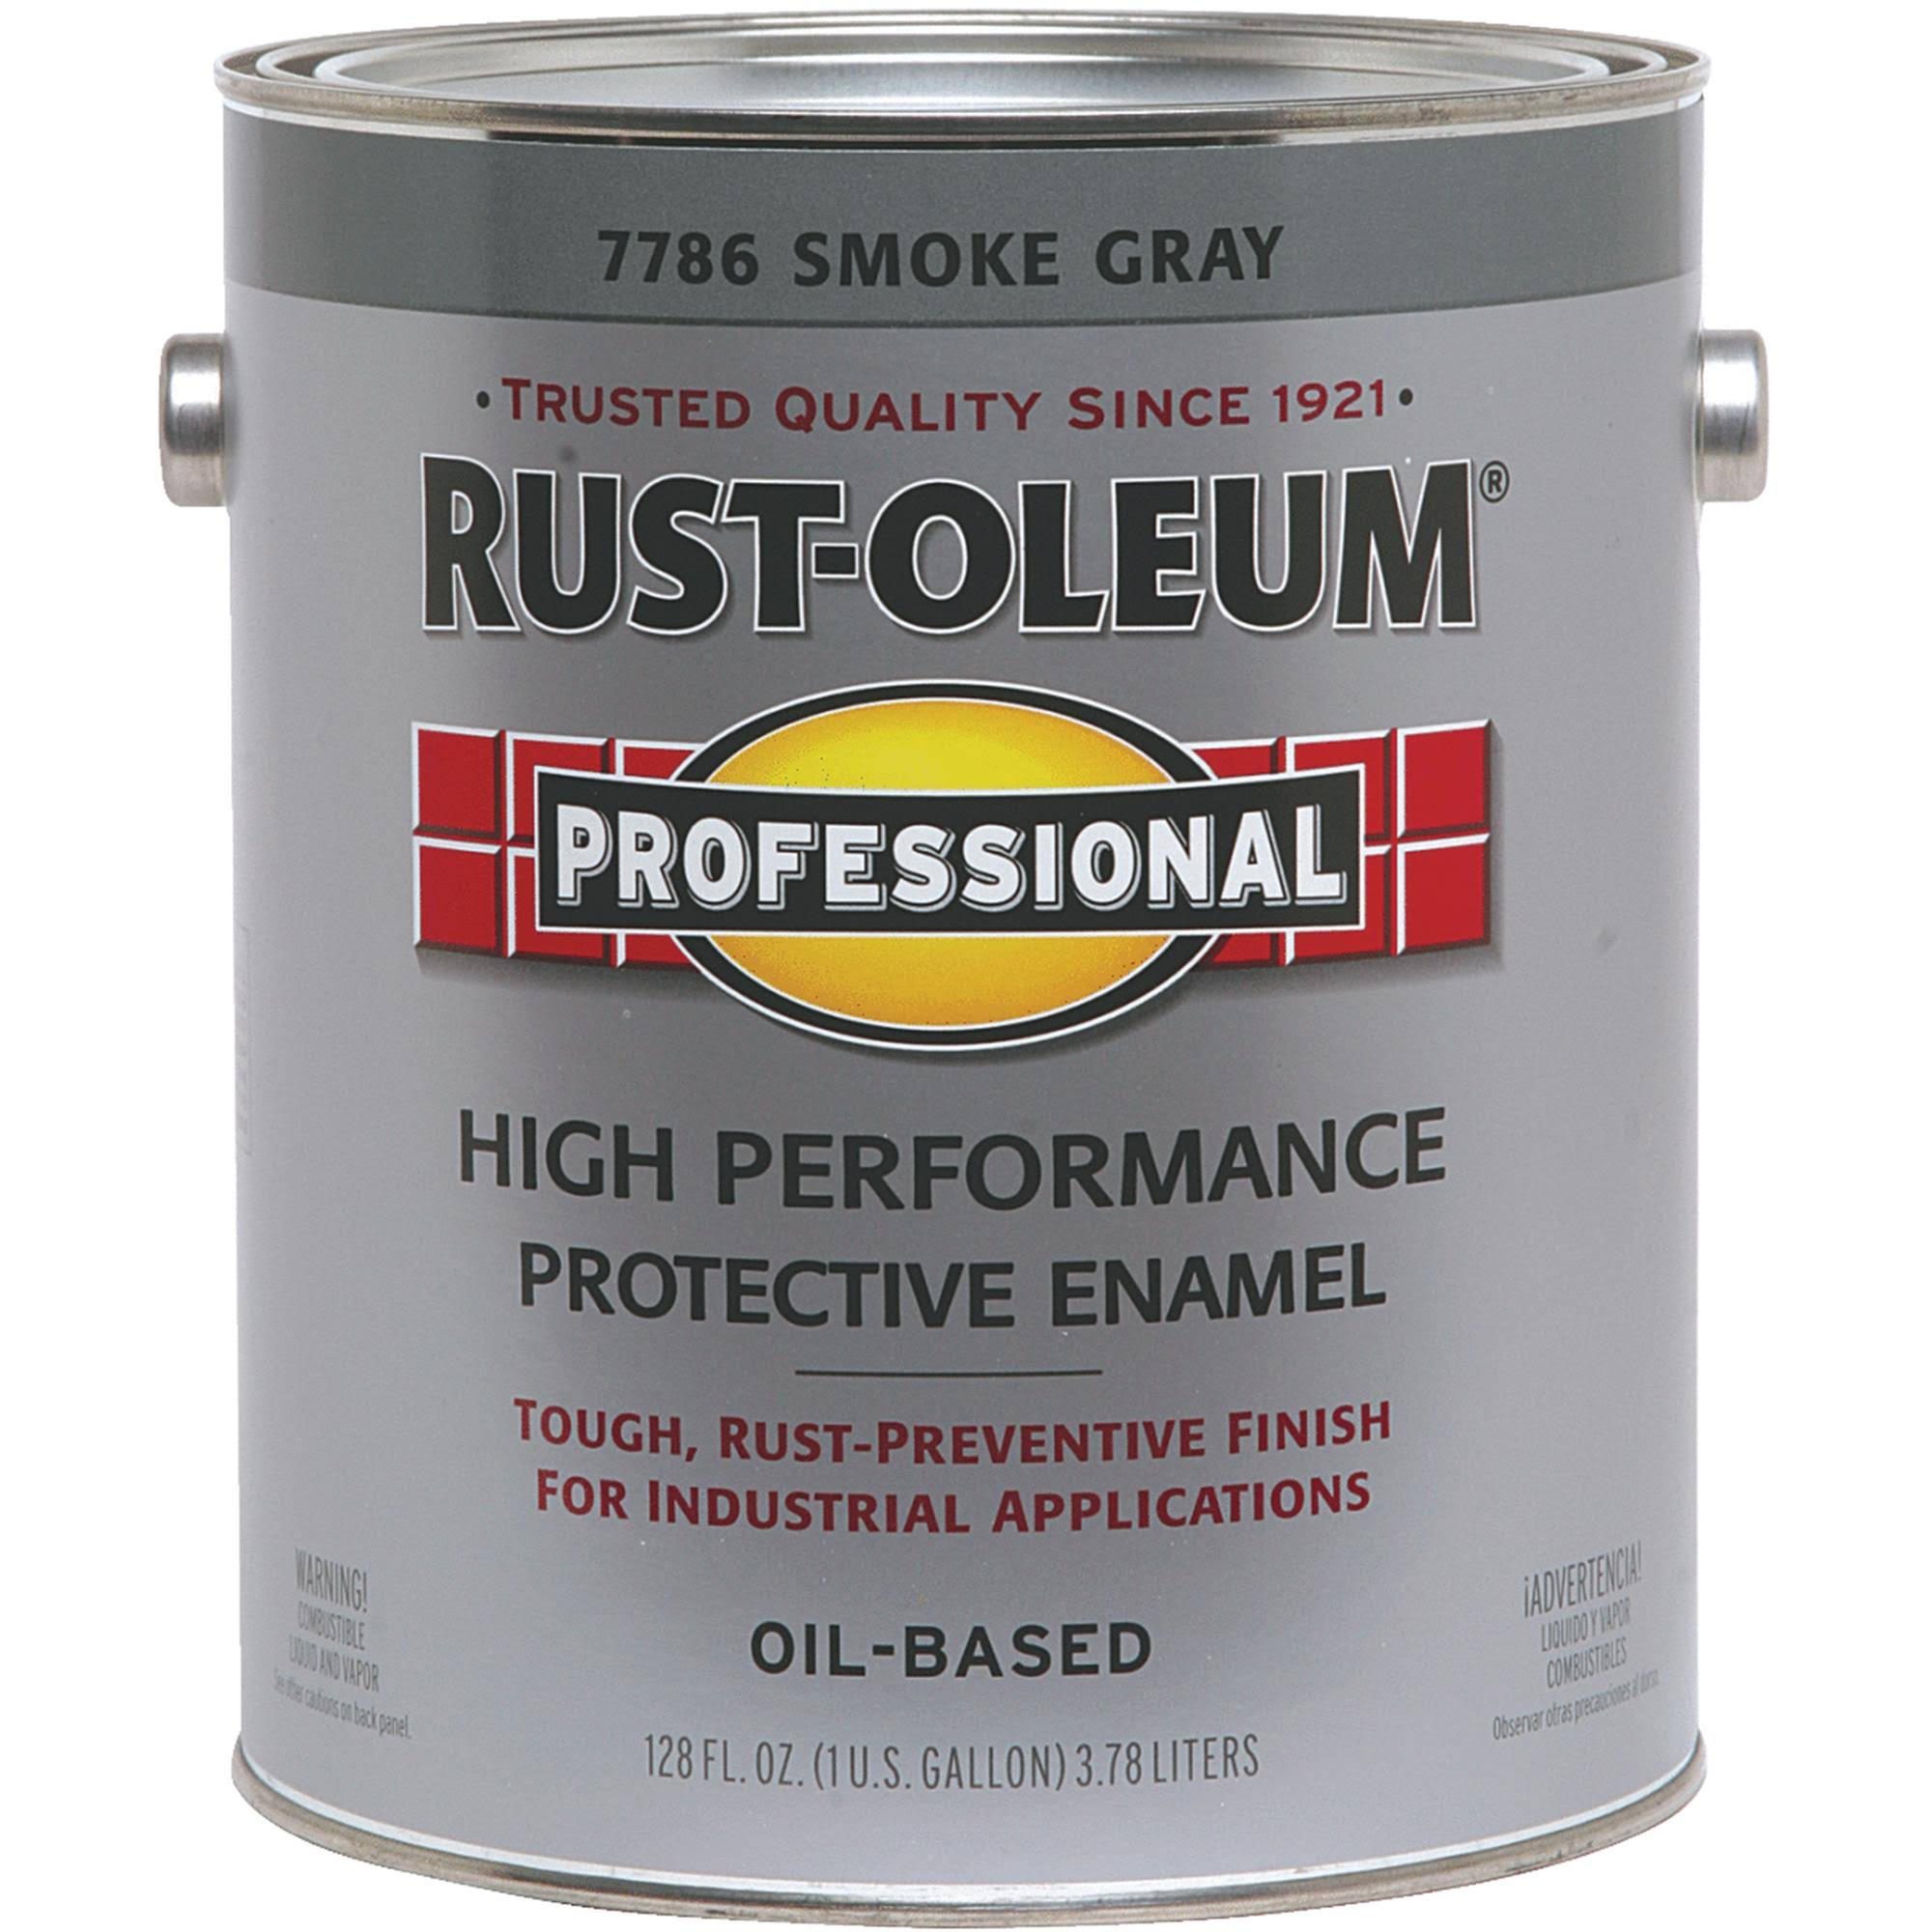 Rust-Oleum Protective Rust Control Enamel Paint - 7786-402 Smoke Gray, 2gal